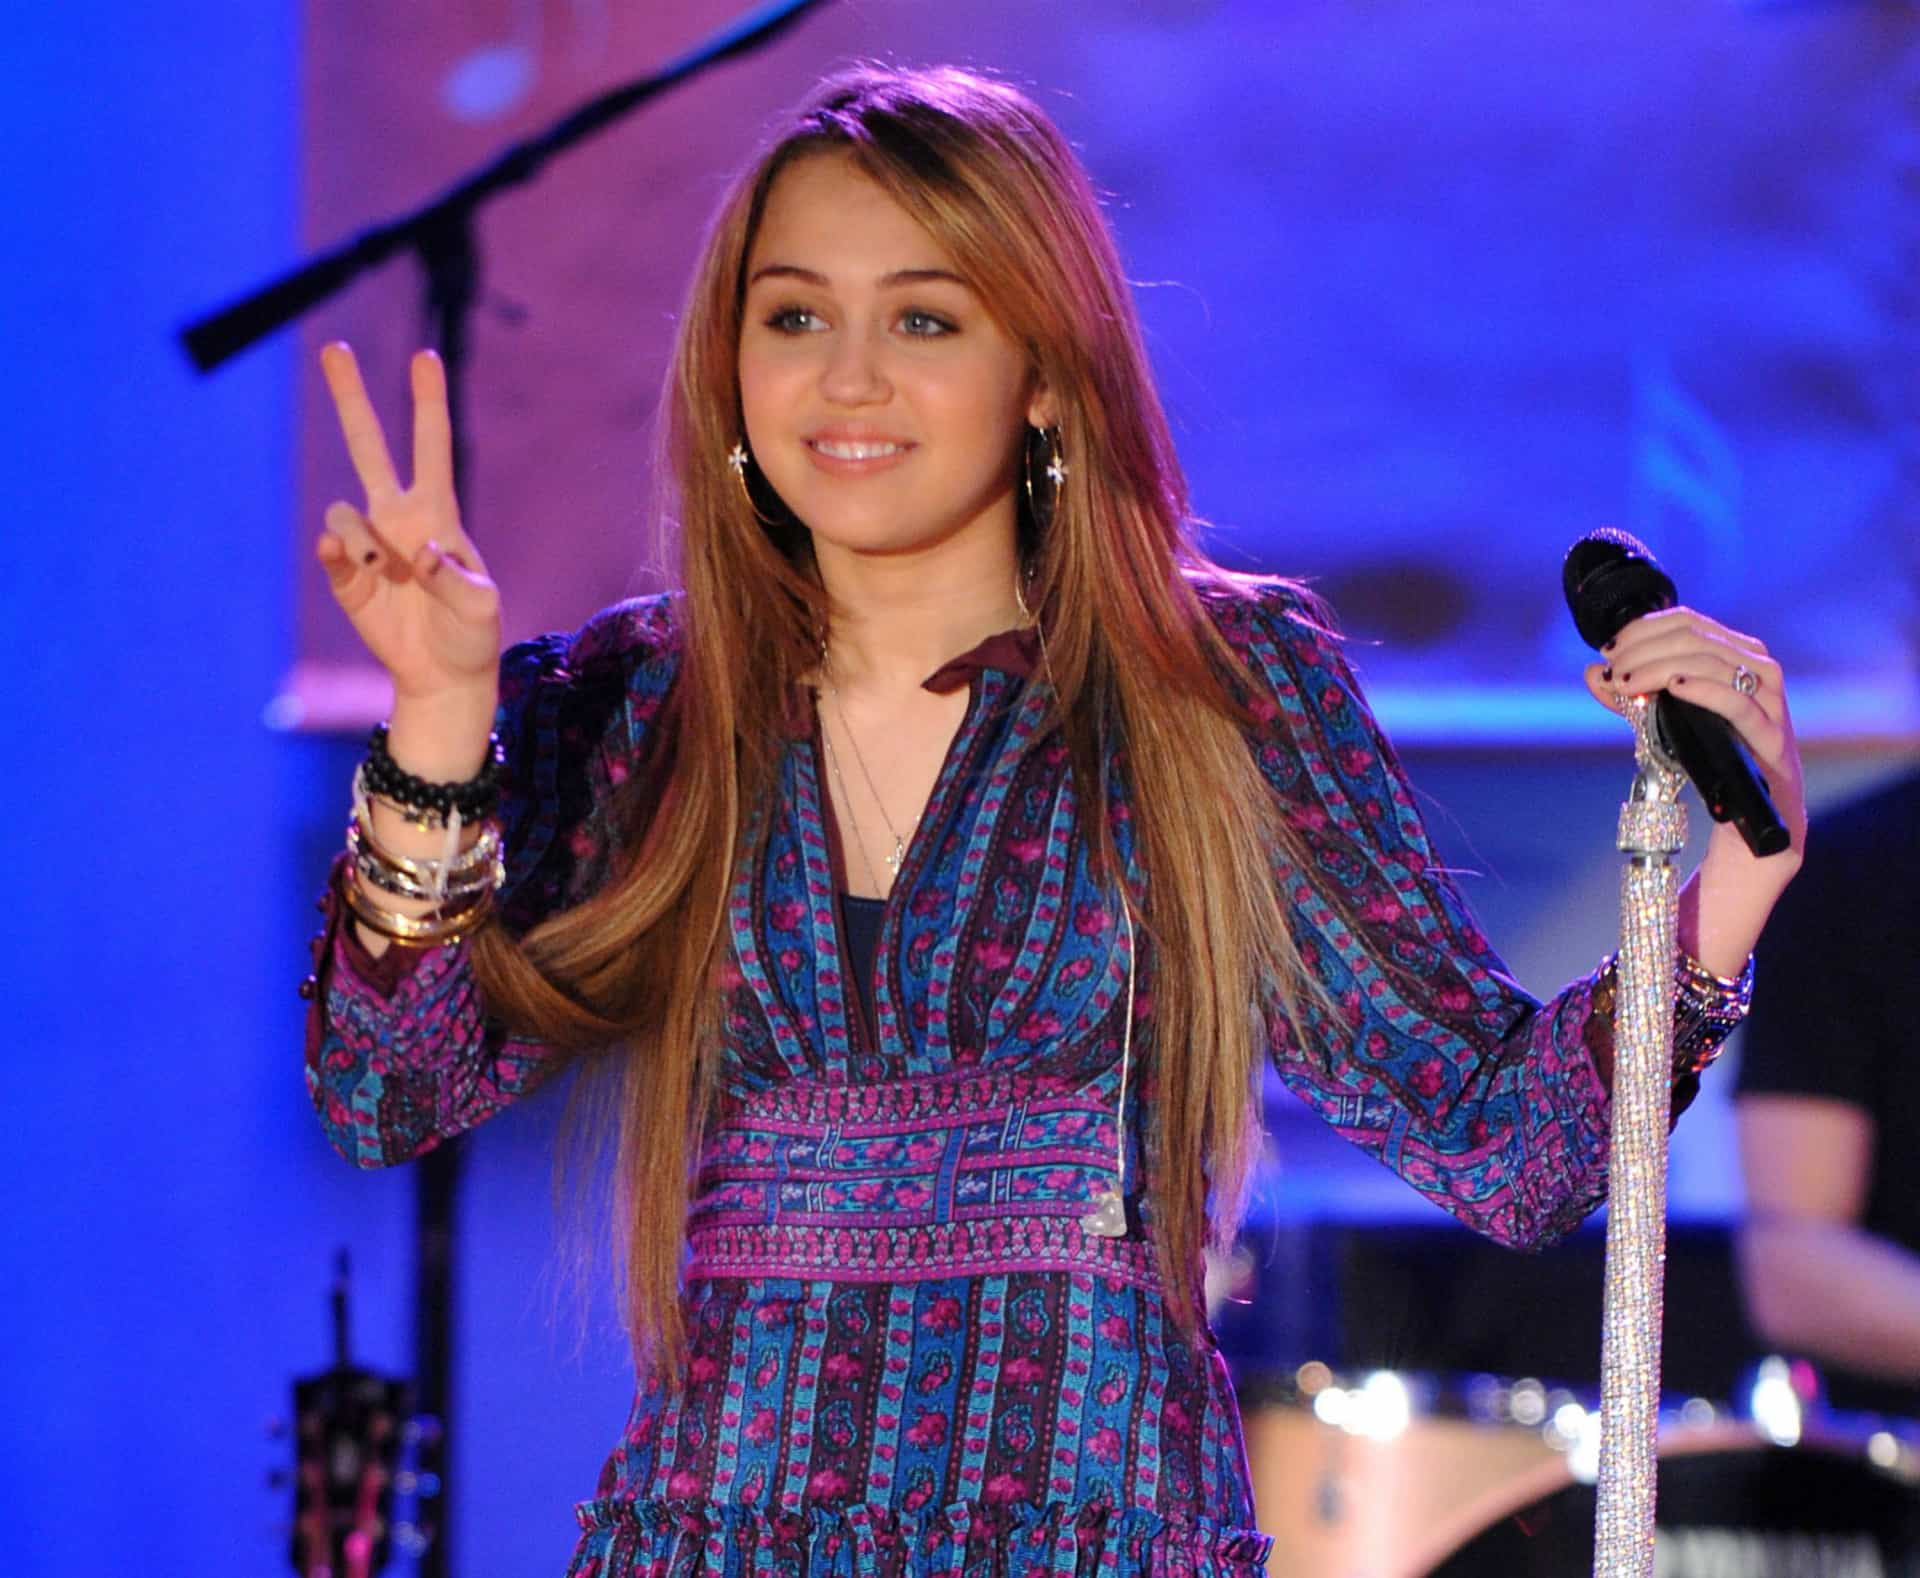 Miley Cyrus: a career and style exposé